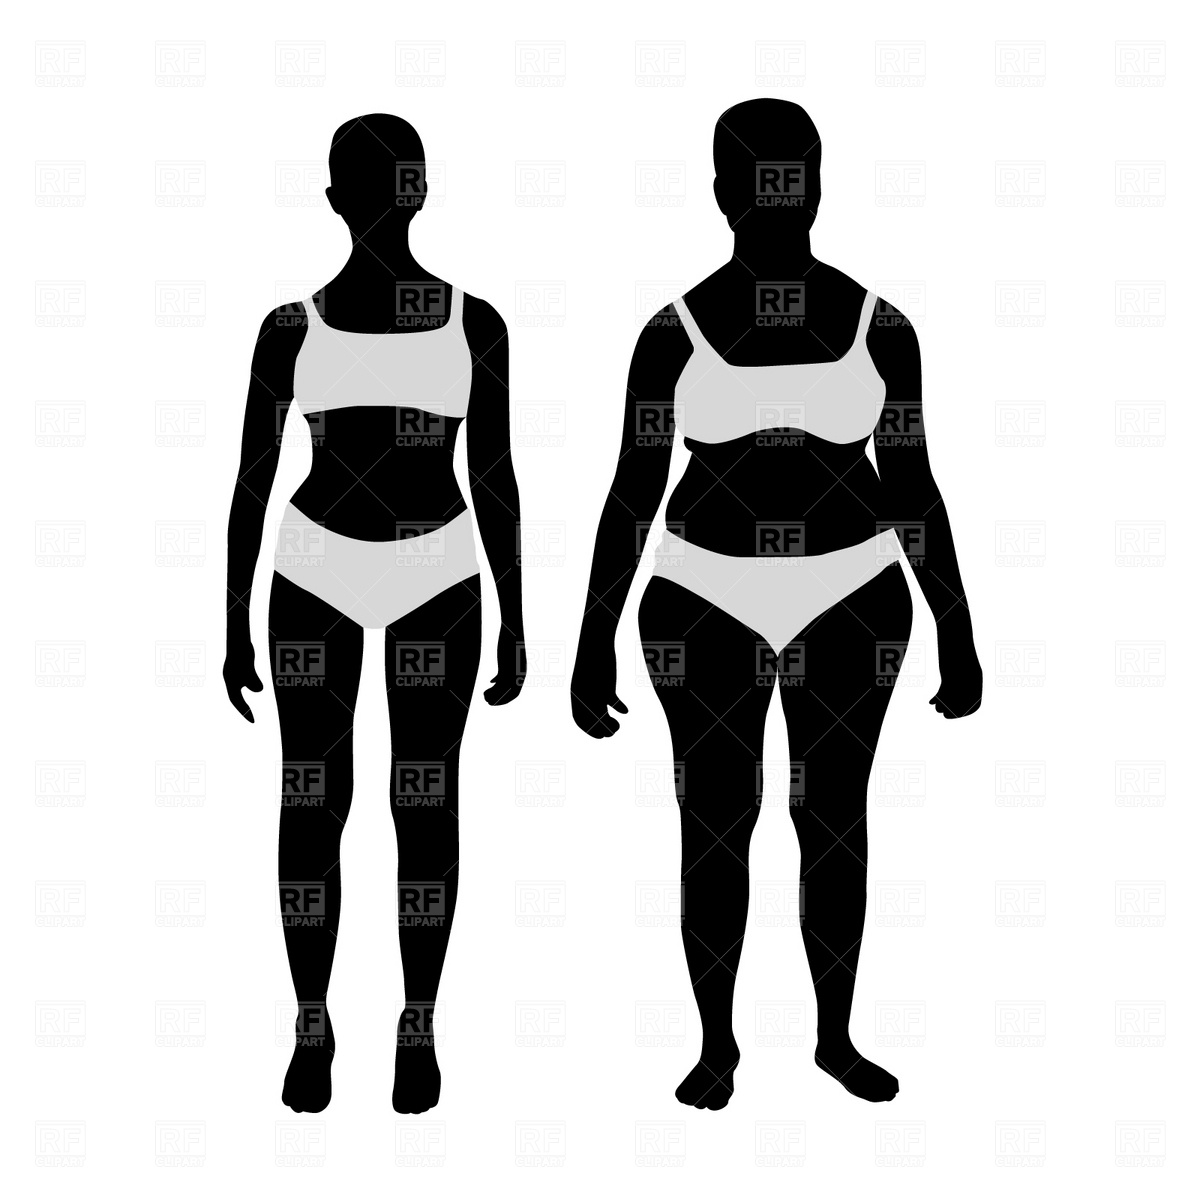 1200x1200 Five Stages Of Losing Weight Woman